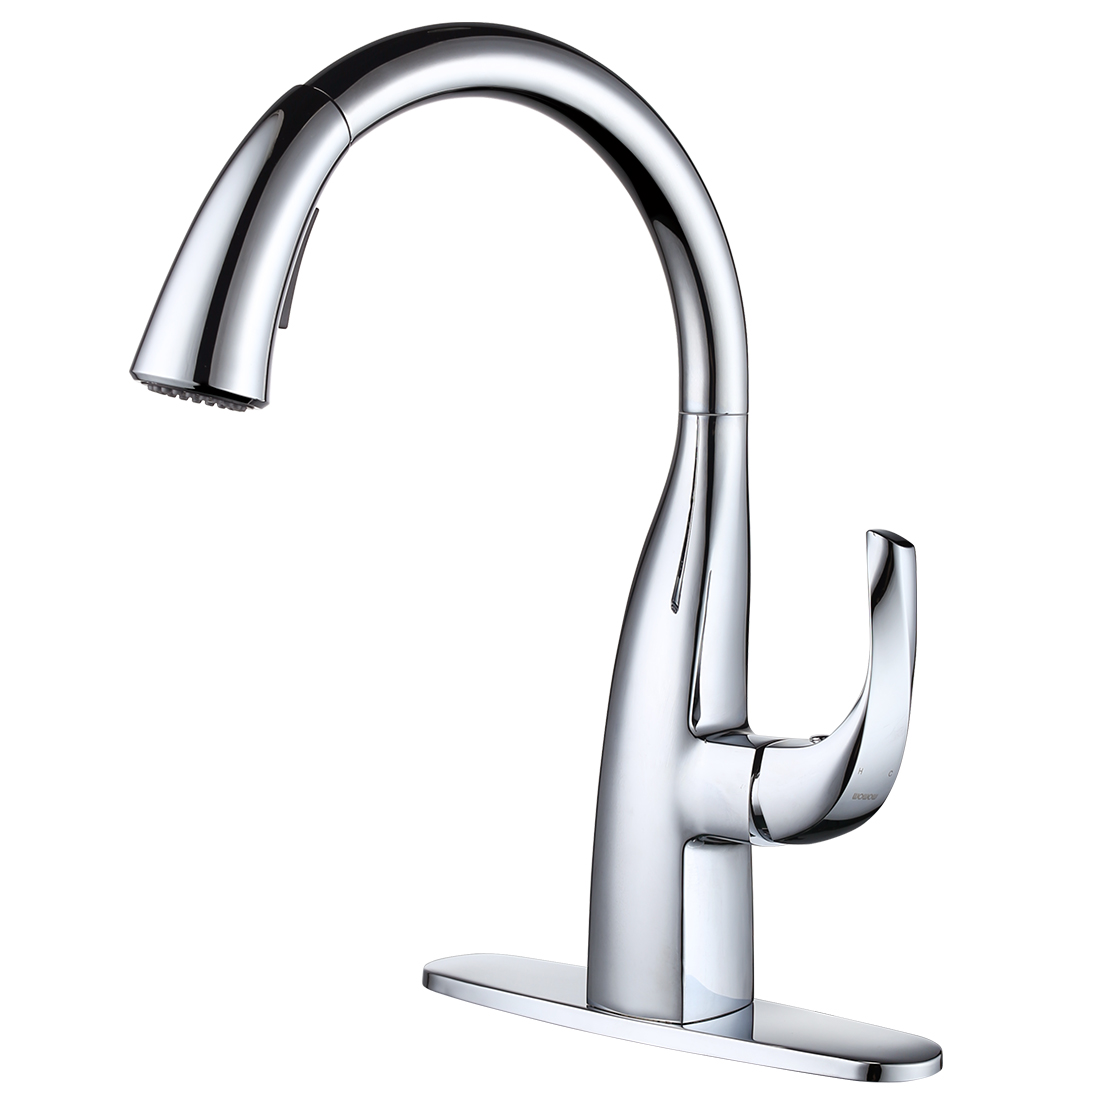 iVIGA Gooseneck Kitchen Faucet with Dual Function Pulldown Sprayer, Single Handle Leak Free 360 Degree Rotation